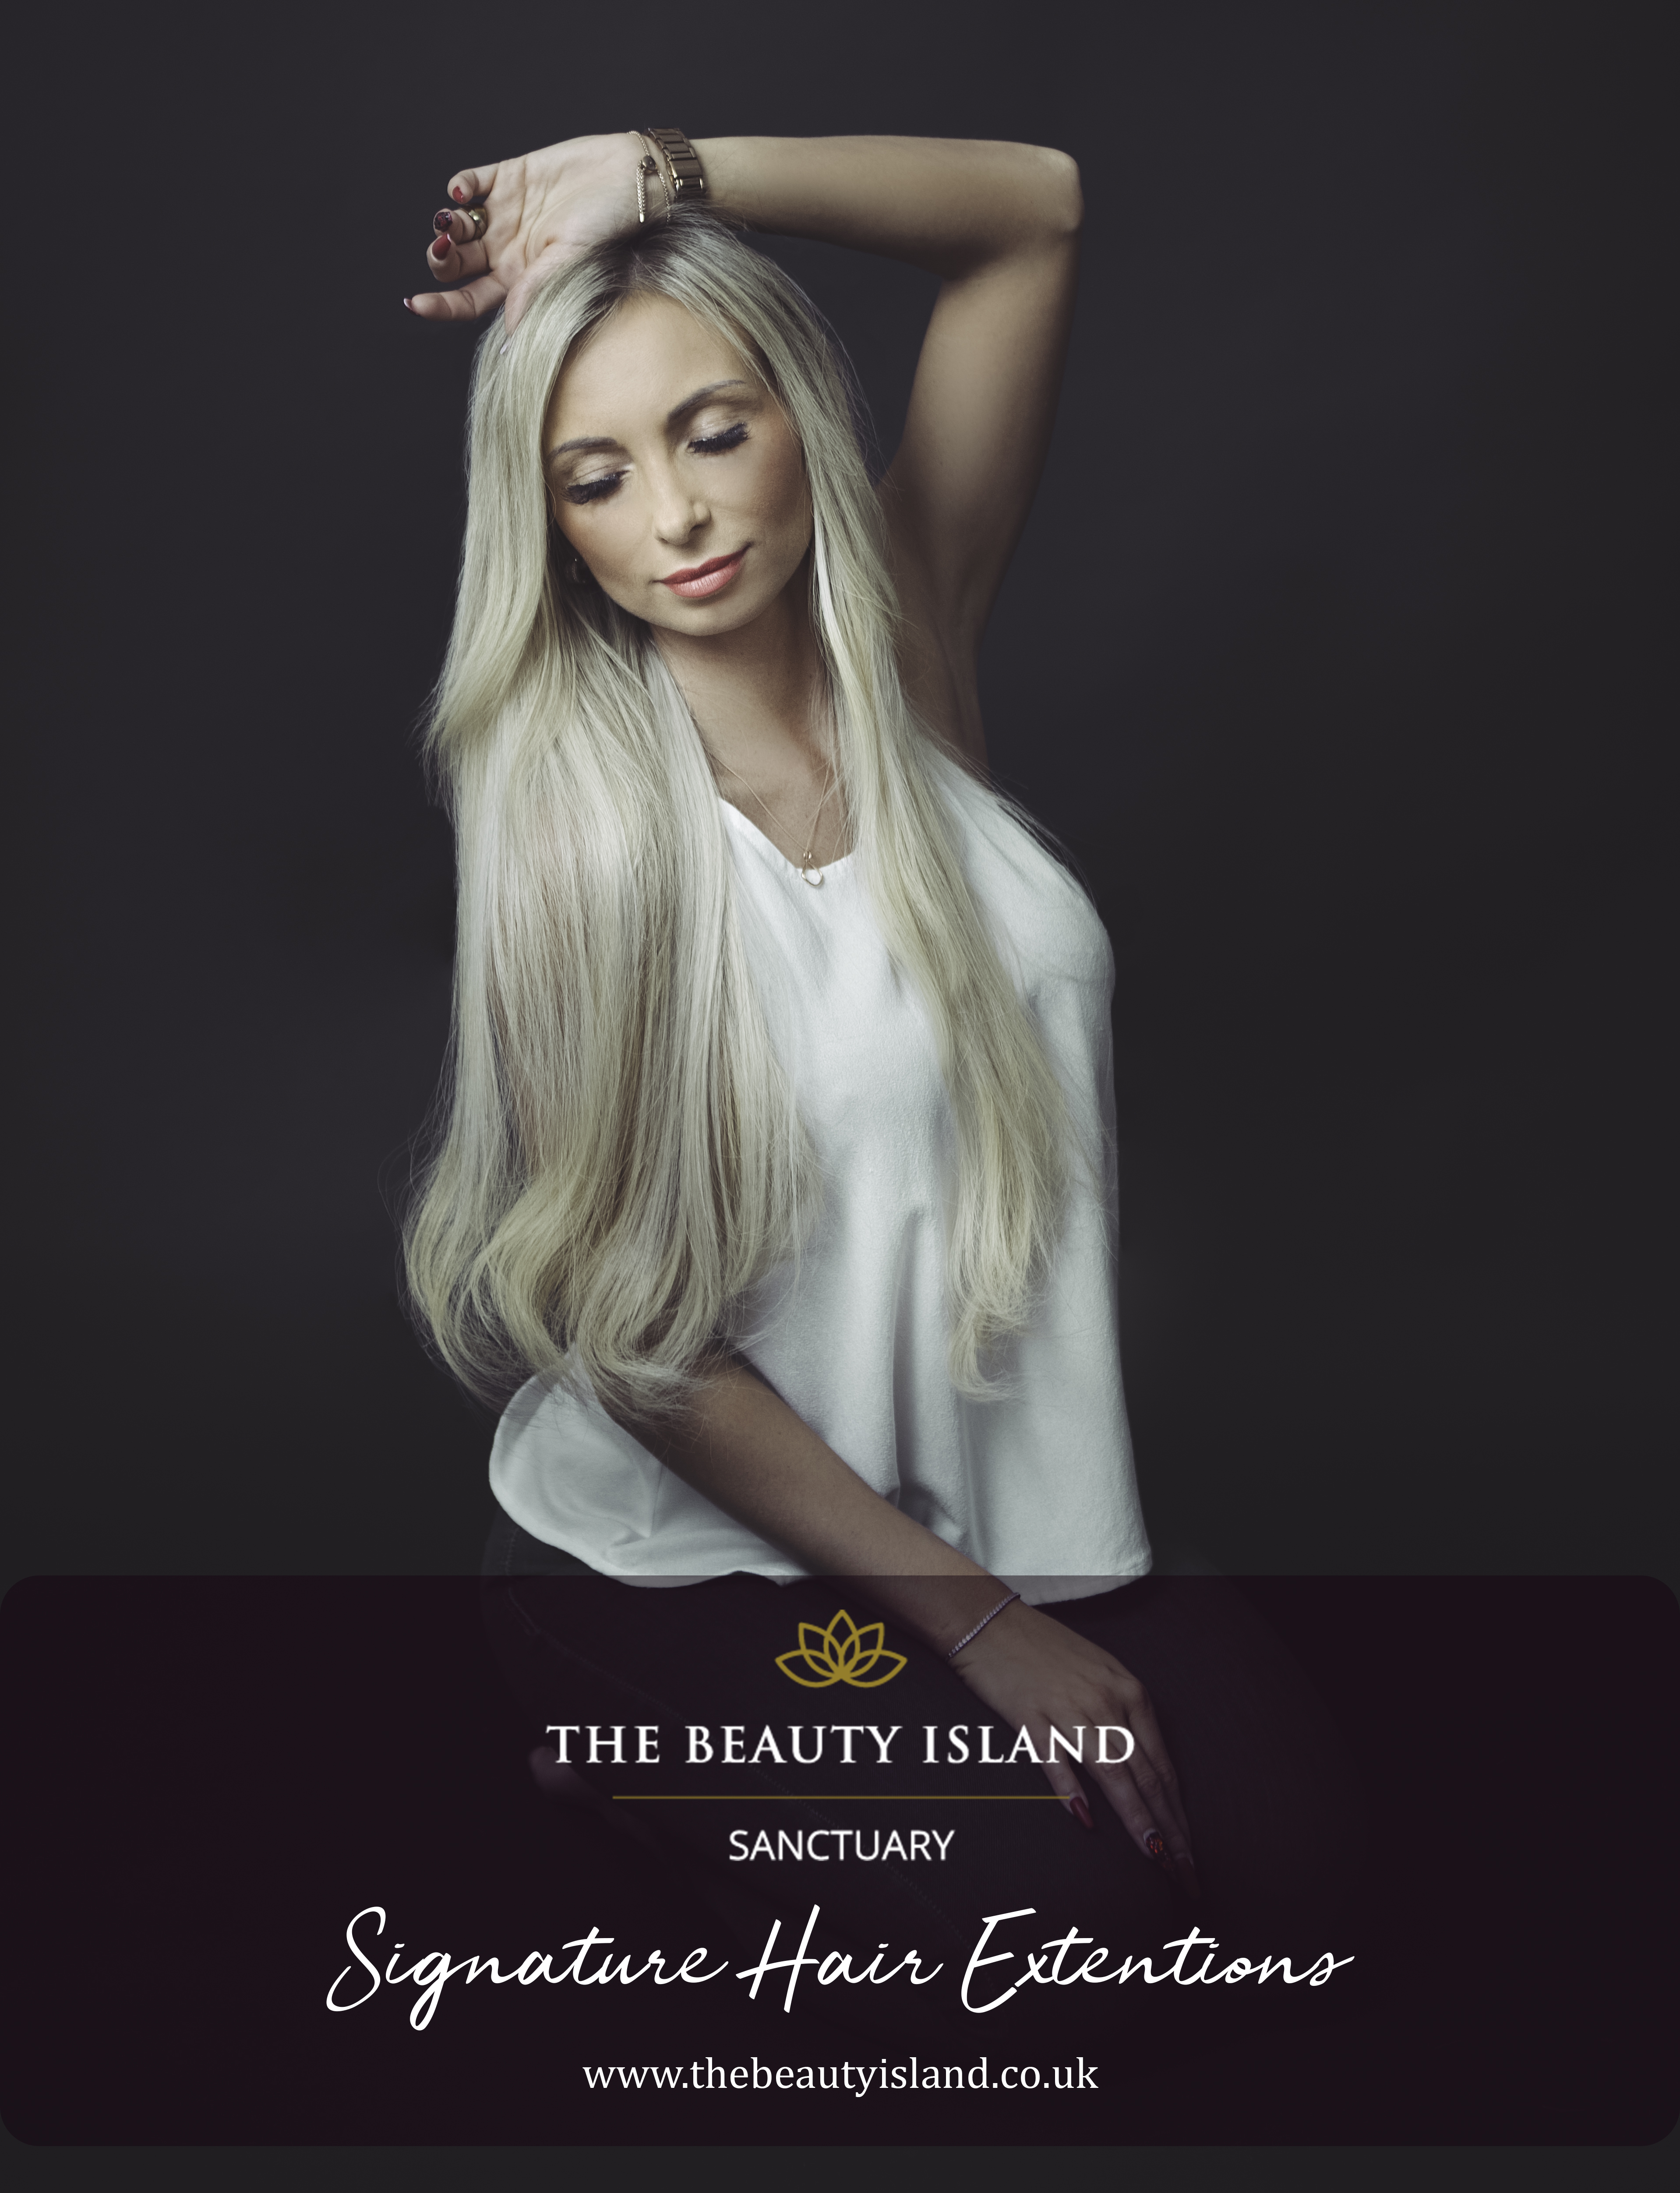 Pro Photoshoot BIS Signature Hair Extensions